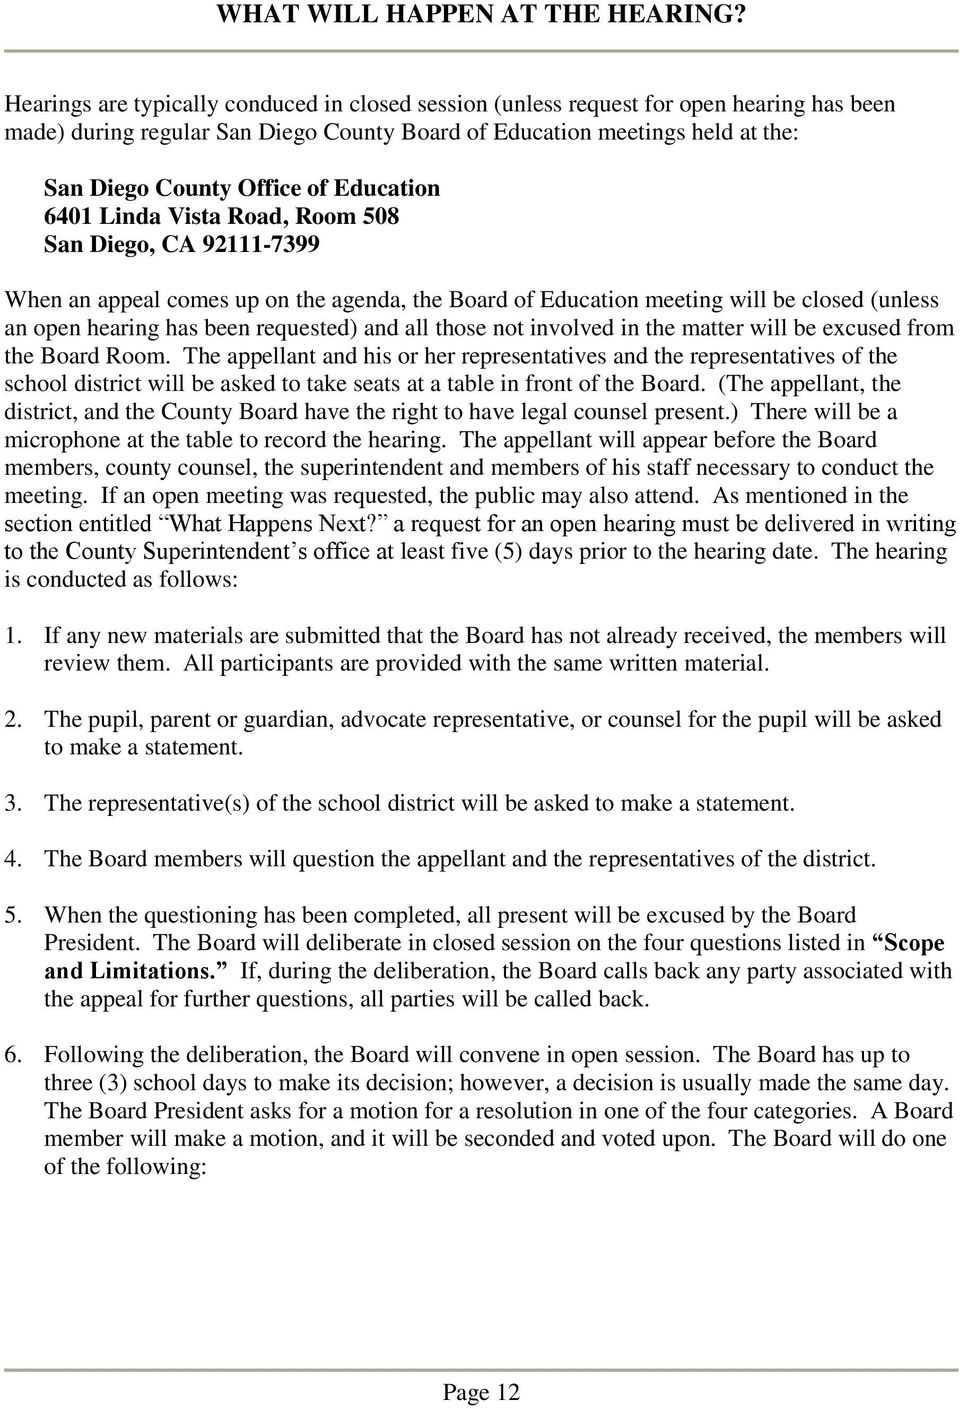 Education 6401 Linda Vista Road, Room 508 San Diego, CA 92111-7399 When an appeal comes up on the agenda, the Board of Education meeting will be closed (unless an open hearing has been requested) and